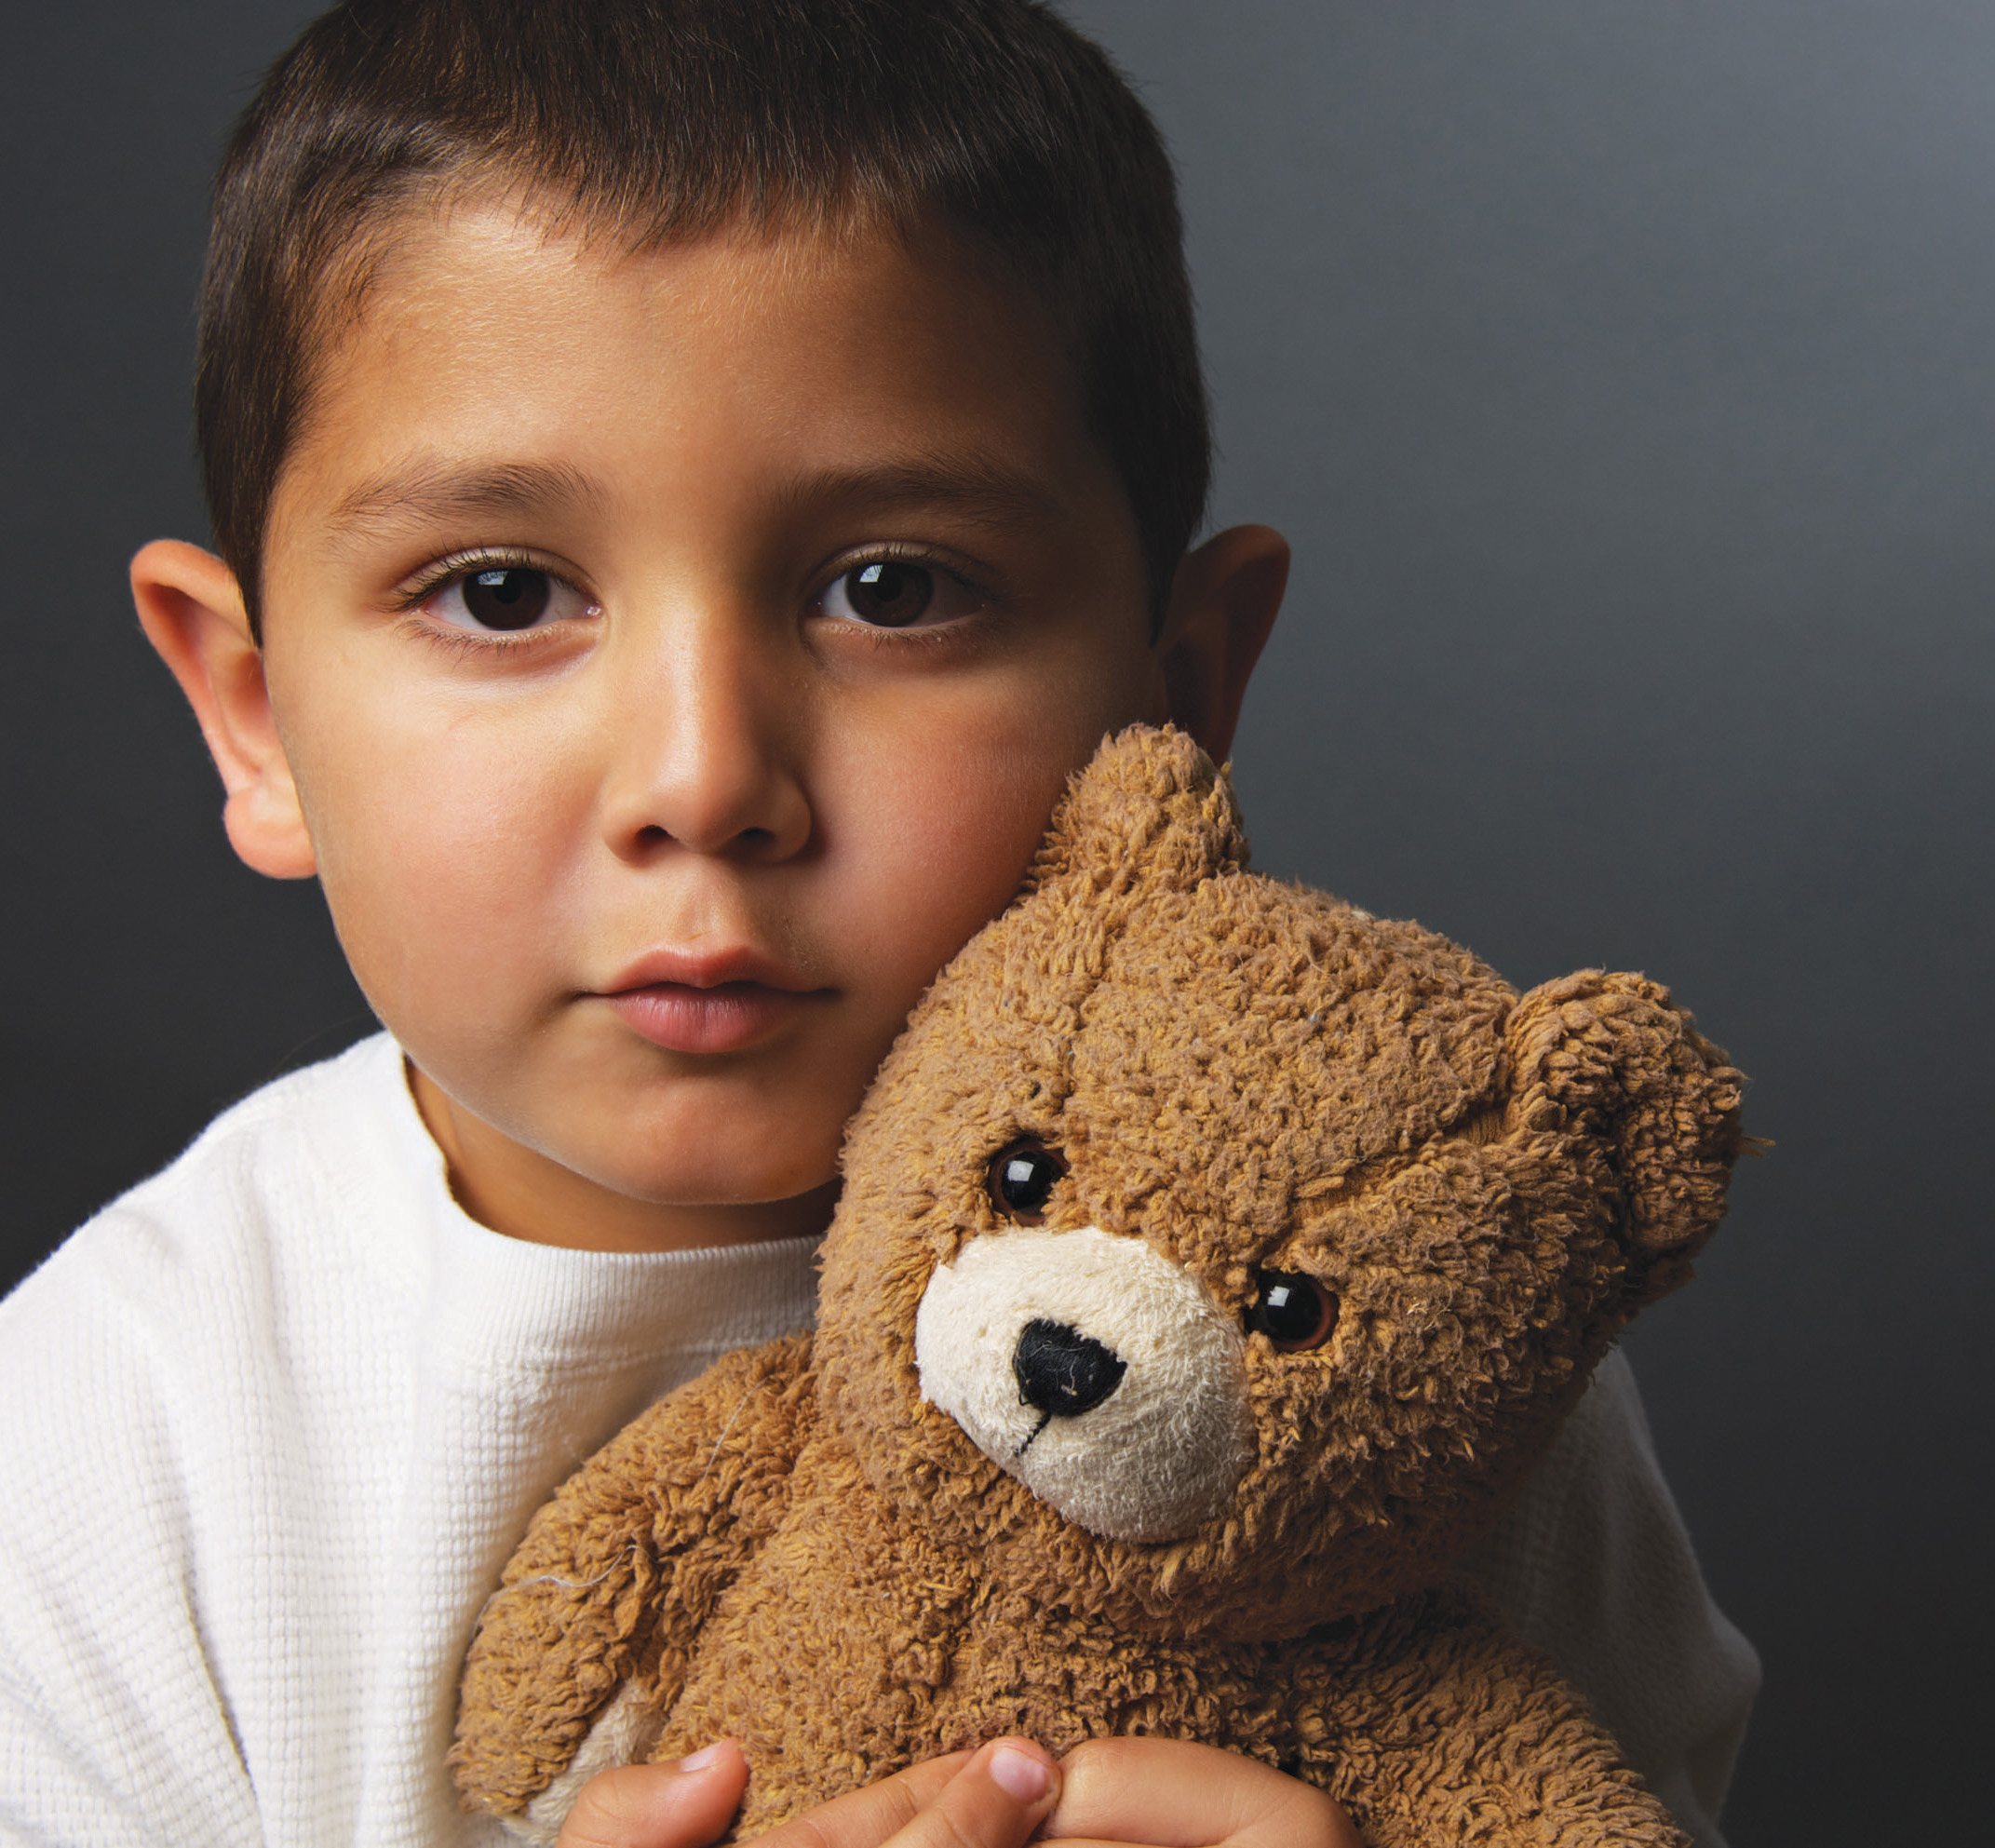 This picture is a sad boy holding his teddy bear.